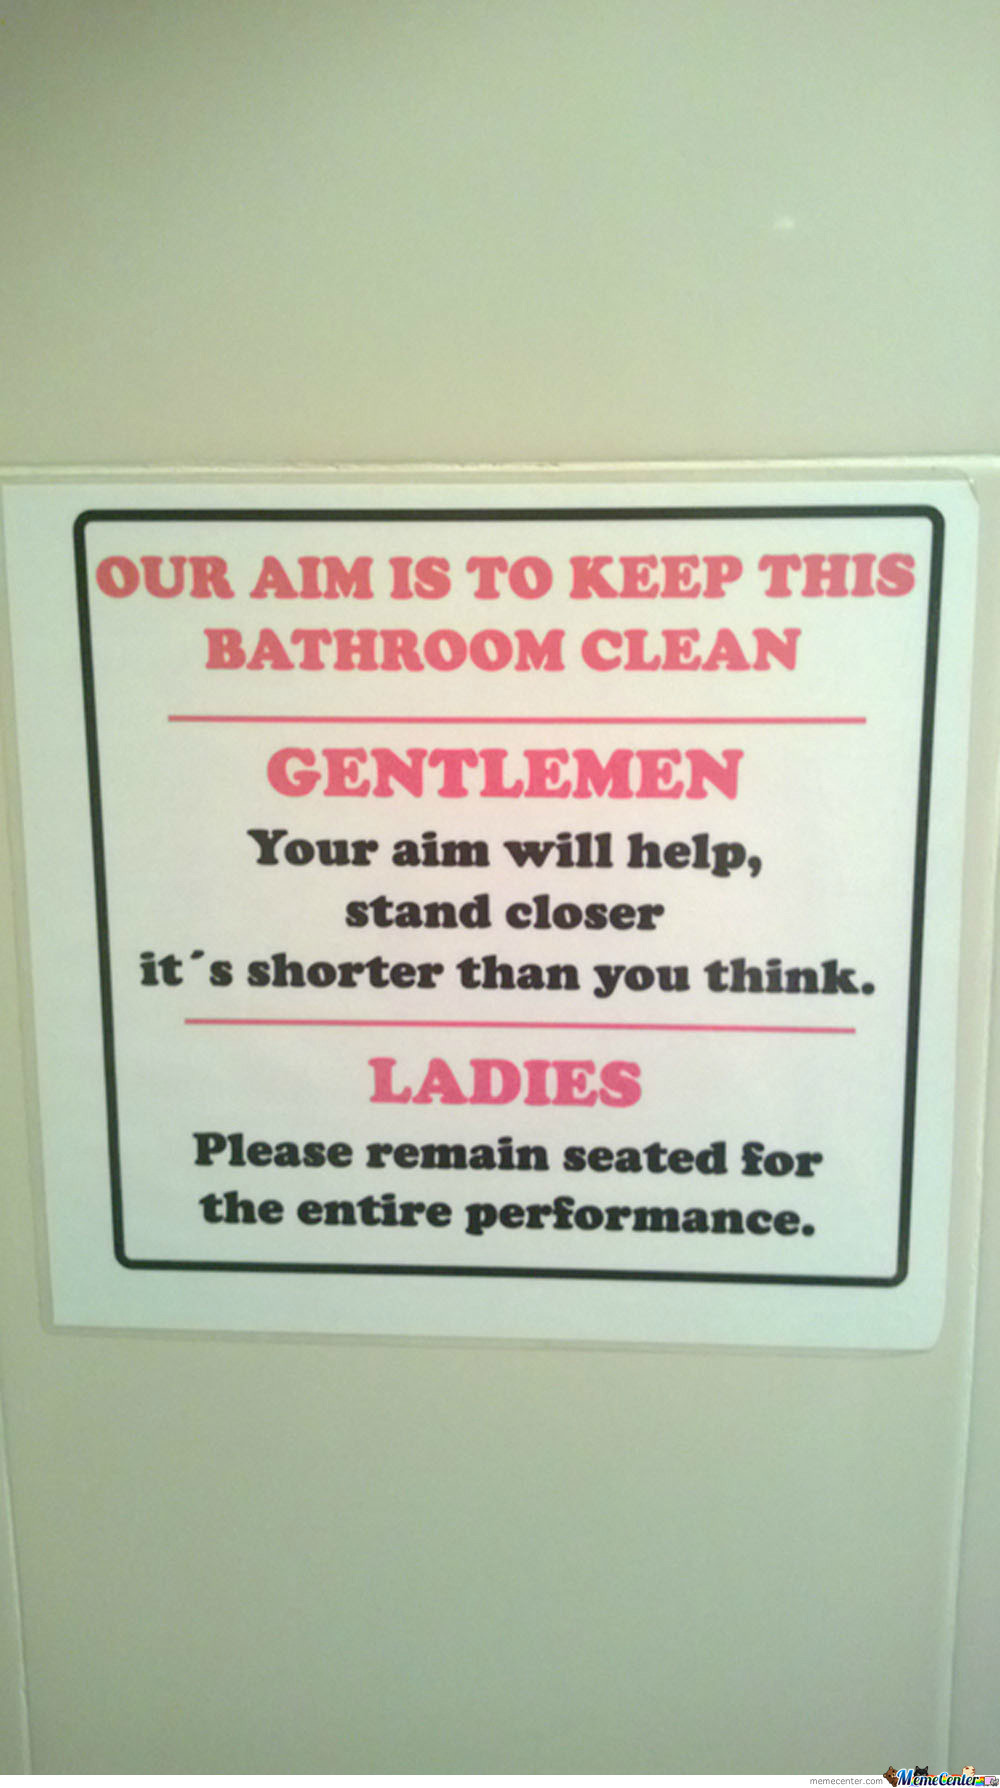 Saw This Last Night At A Bar's Restroom